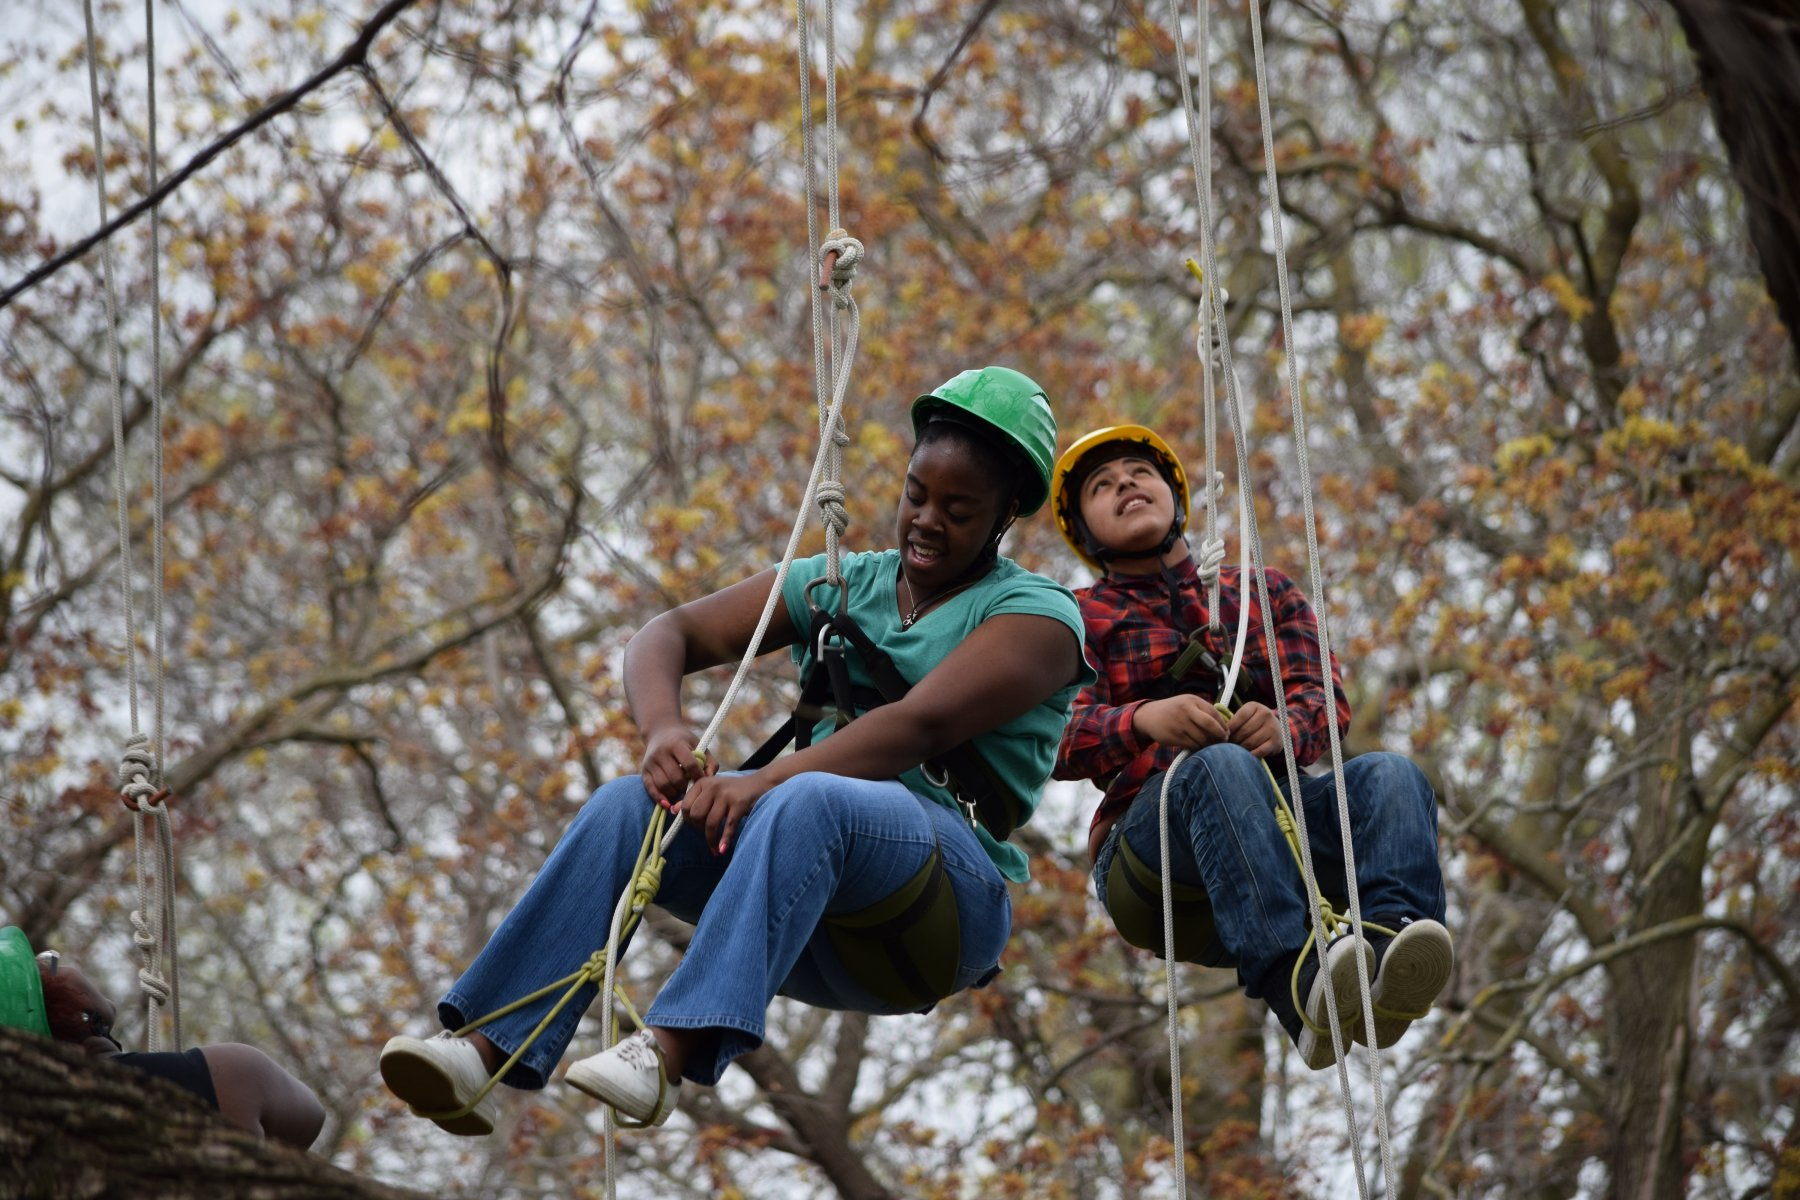 Kids climbing a tree with rope harnesses.